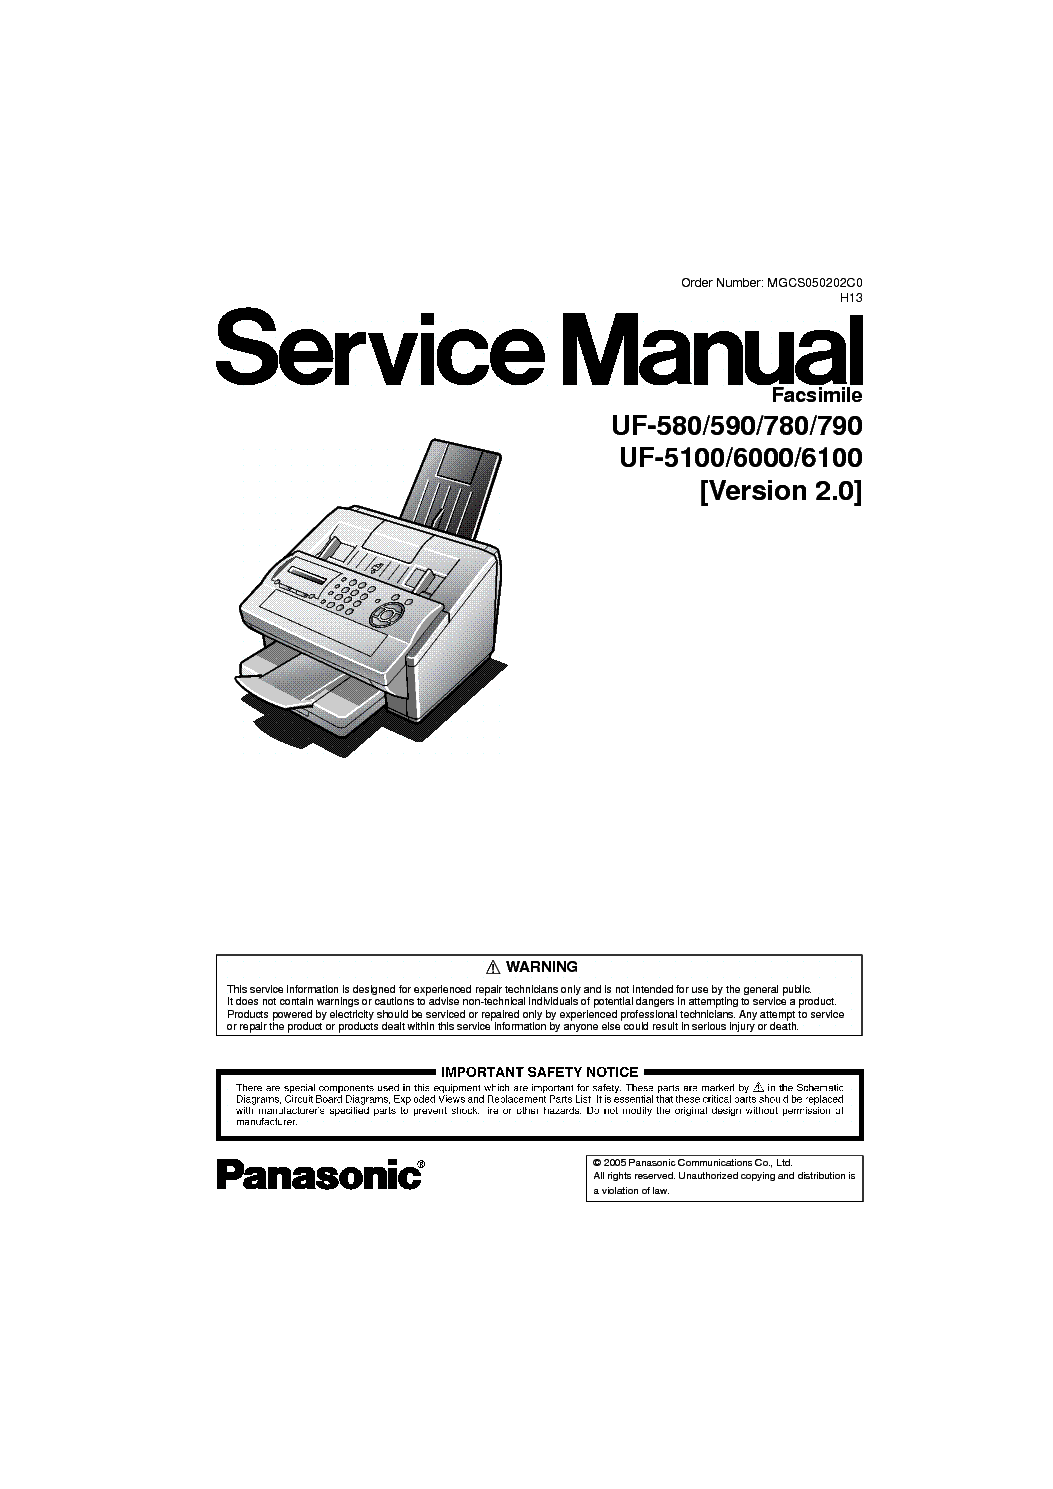 PANASONIC UF5100 6000 6100 VER2.0 service manual (1st page)